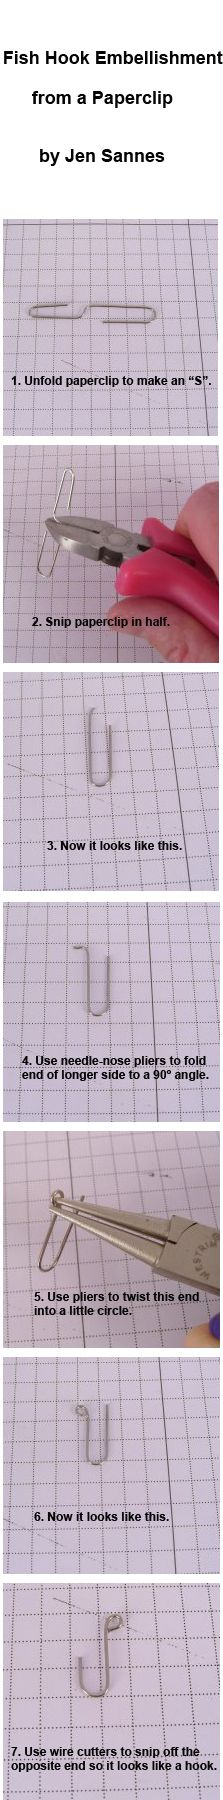 How to make a fish hook embellishment from a paperclip - by Jen Sannes